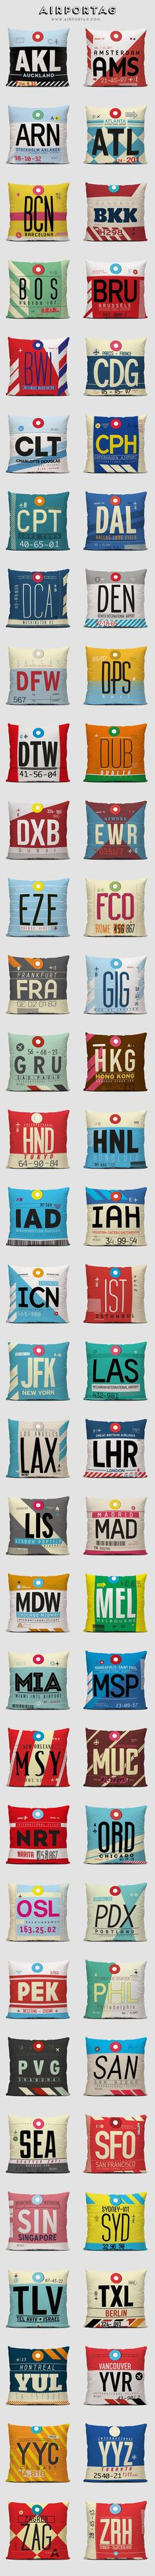 Throw pillows inspired on vintage travel luggage tags using airport IATA codes. www.airportag.com: